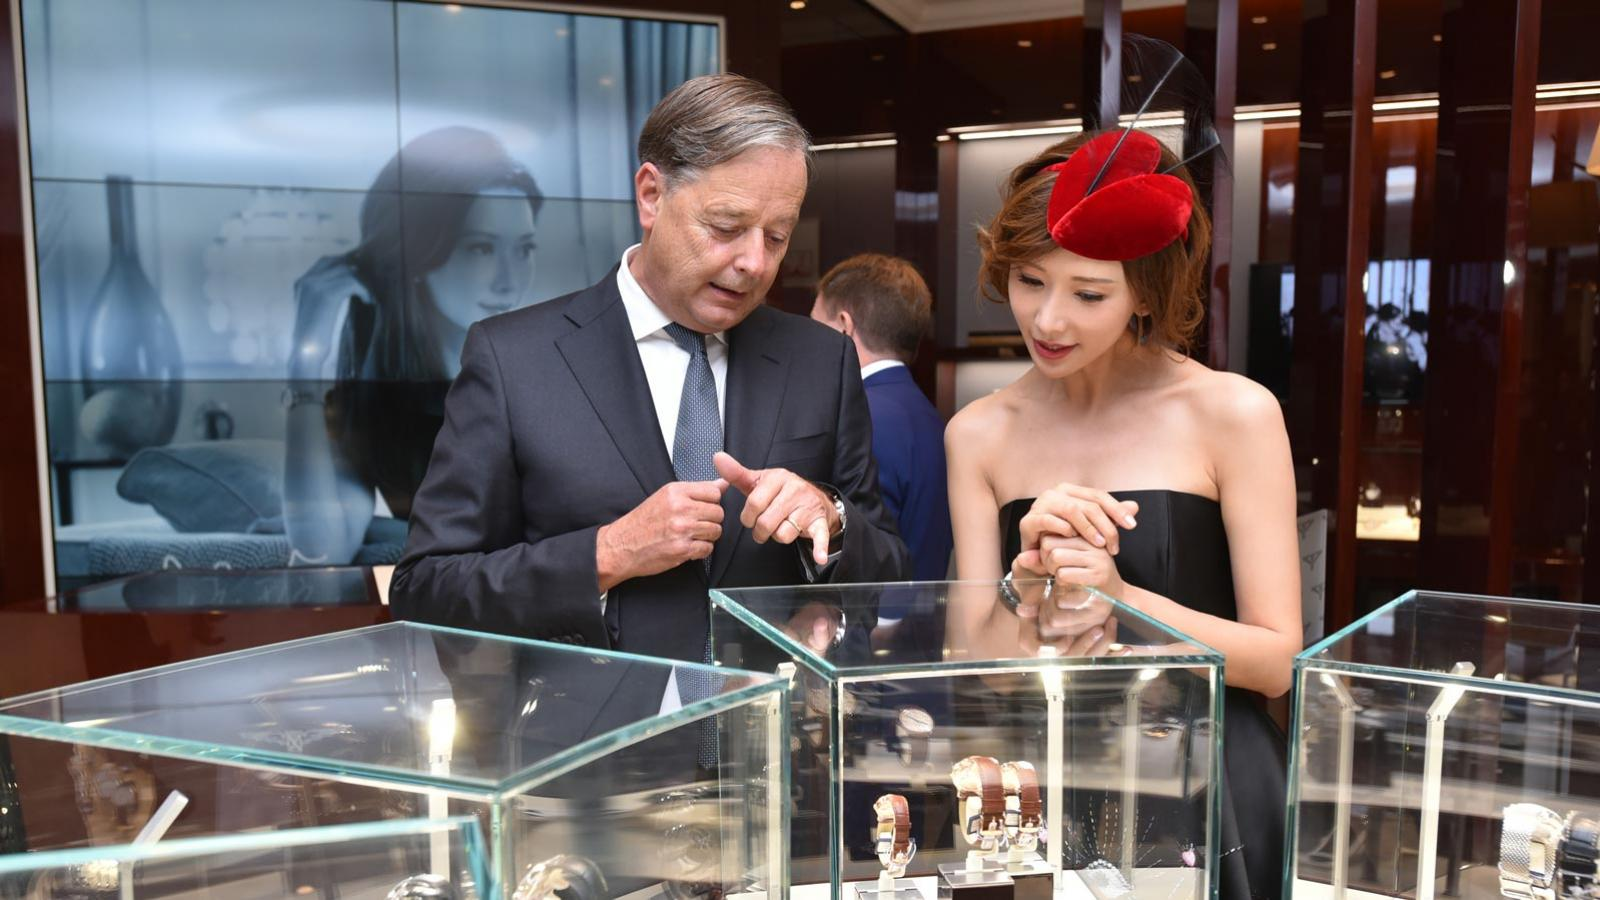 New Boutique opening, Malaysia, Chi Ling Lin, Suria KLCC,pic6